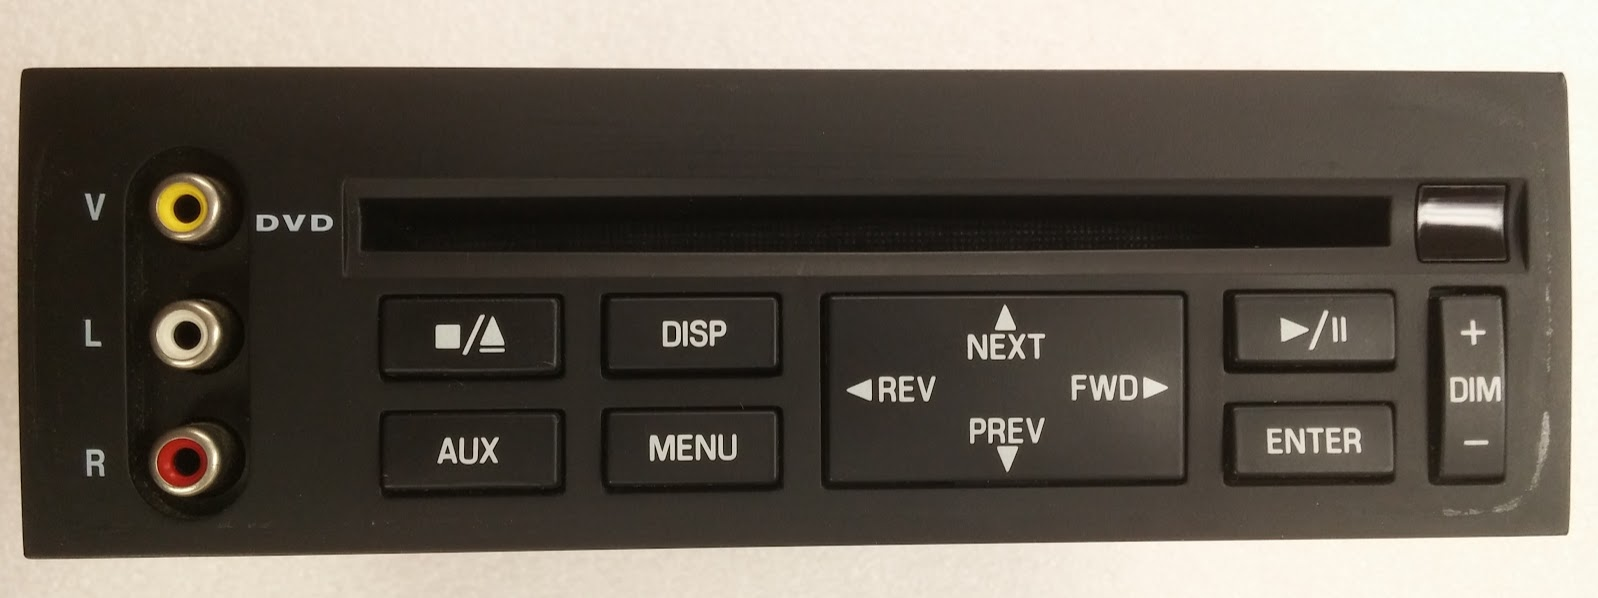 ford 2003 dvd player for rse system reman